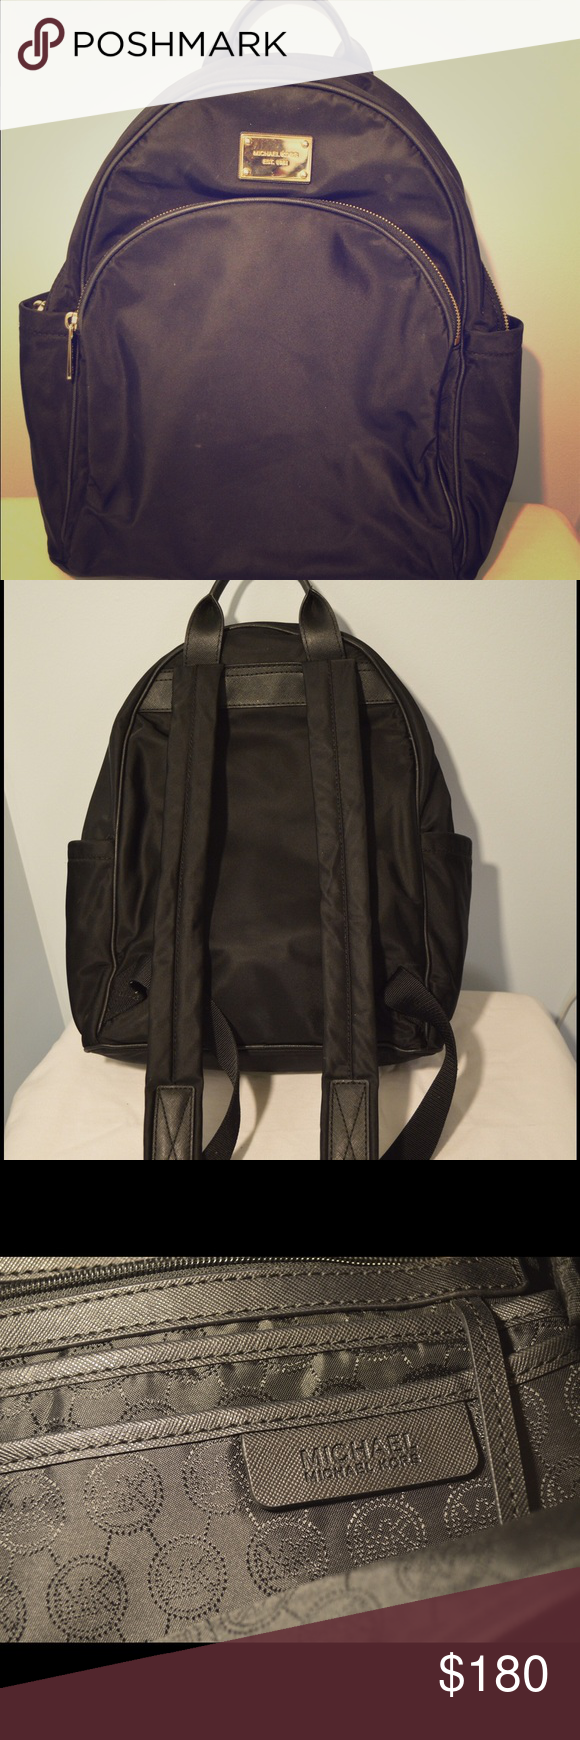 Michael Kors Backpack LIKE NEW! Michael Kors backpack! All zippers work and no holes or tears. Many pockets, great for students or travel! It even has a key ring inside for use as a purse. Michael Kors Bags Backpacks